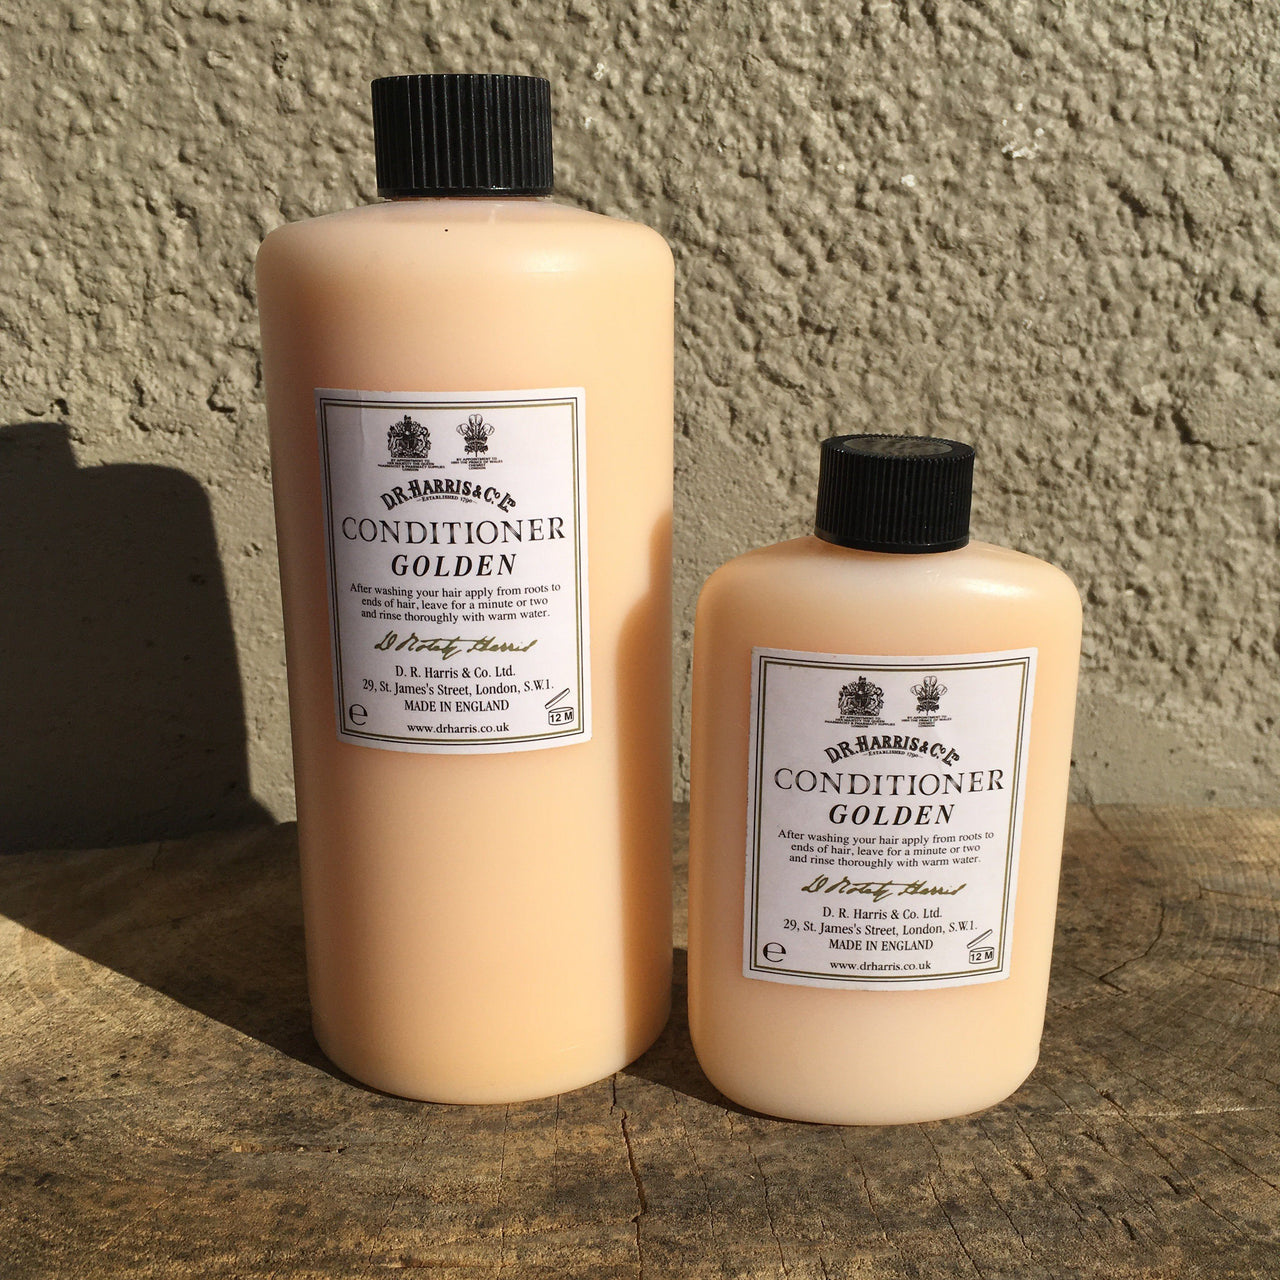 D.R. Harris Golden Conditioner